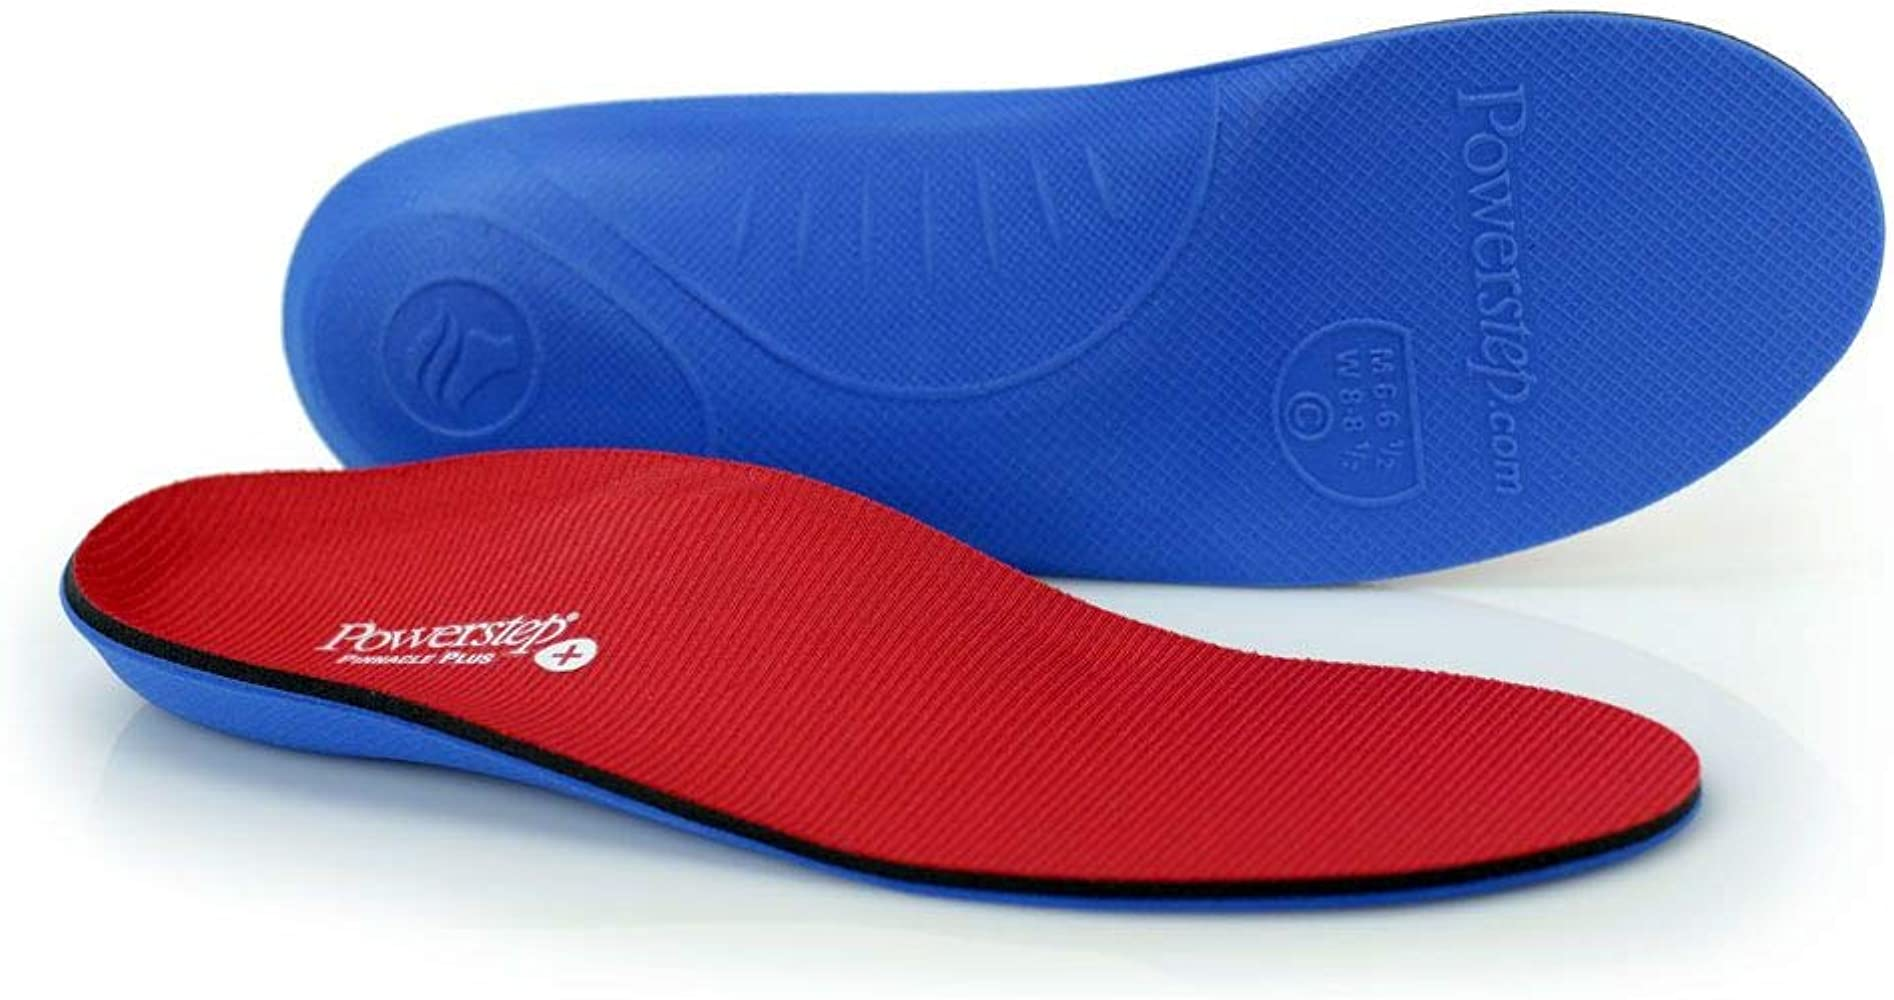 Powerstep Pinnacle Plus Met Insoles Sandal, Red/Blue, Men's 6-6.5, Women's 8-8.5